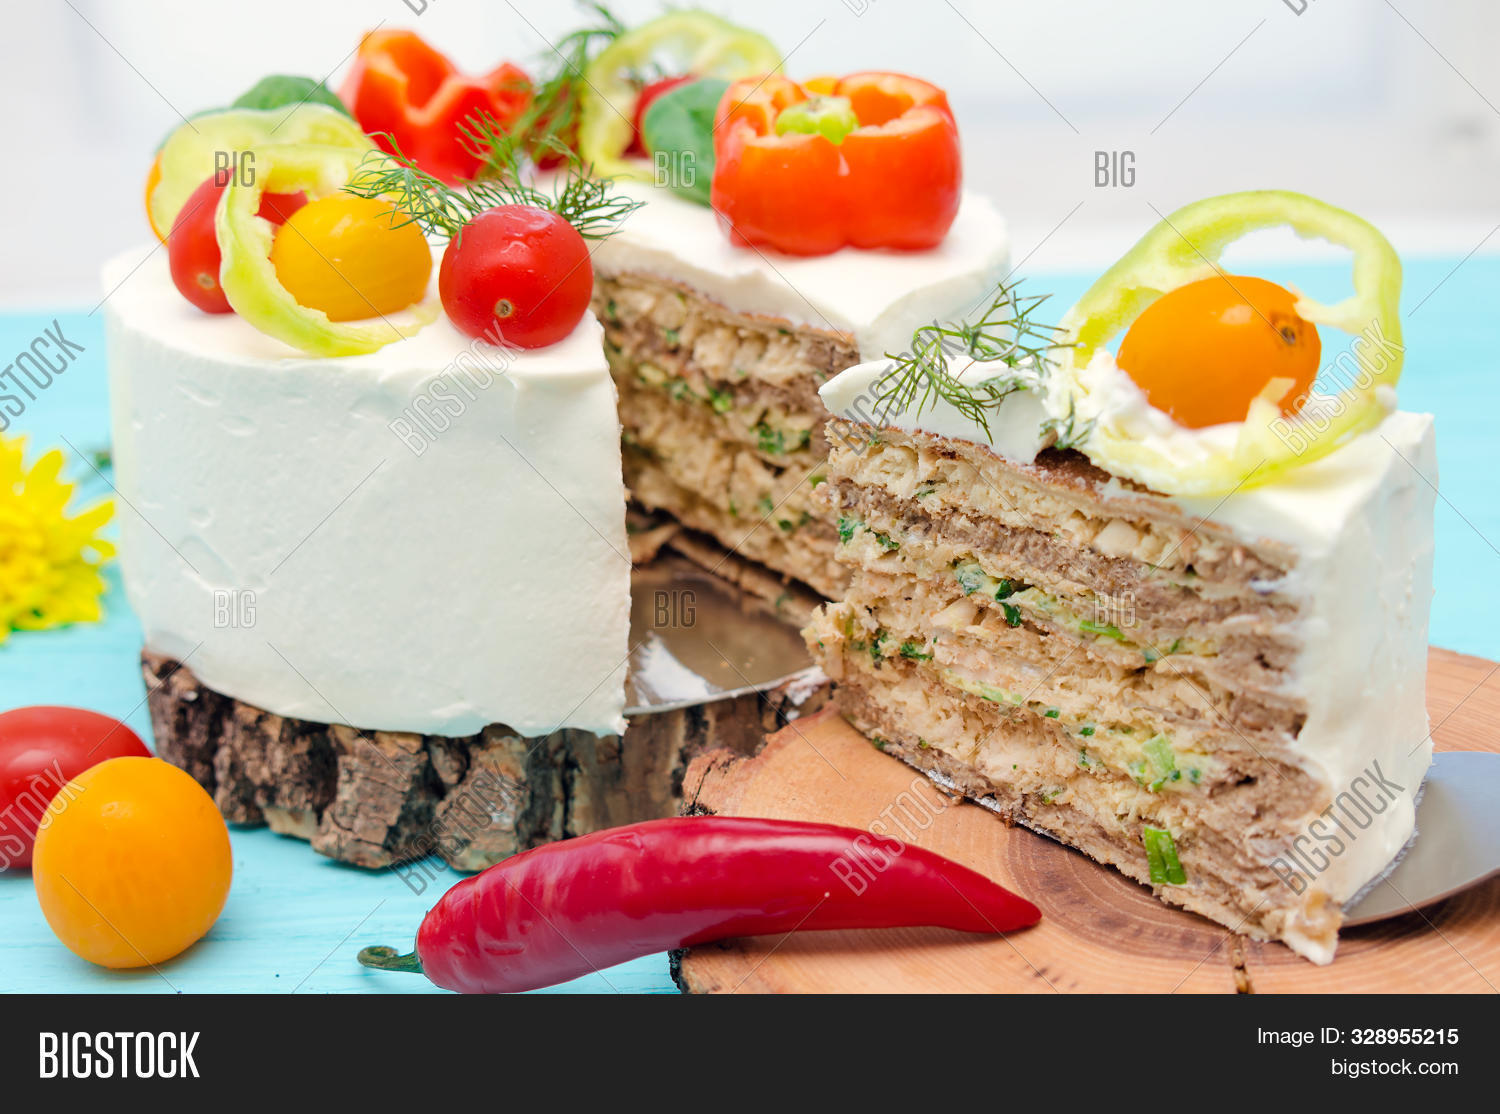 Crepe,Crepeville,bake,baked,baking,beets,breakfast,cake,casserole,cheese,chicken,confectionery,courgette,cuisine,dinner,dish,eating,egg,food,frittata,gratin,homemade,italian,layers,leaves,lunch,male,meal,meat,pancake,pastry,peppers,pie,products,red,salad,snack,sweetened,table,tomatoes,wooden,zucchini